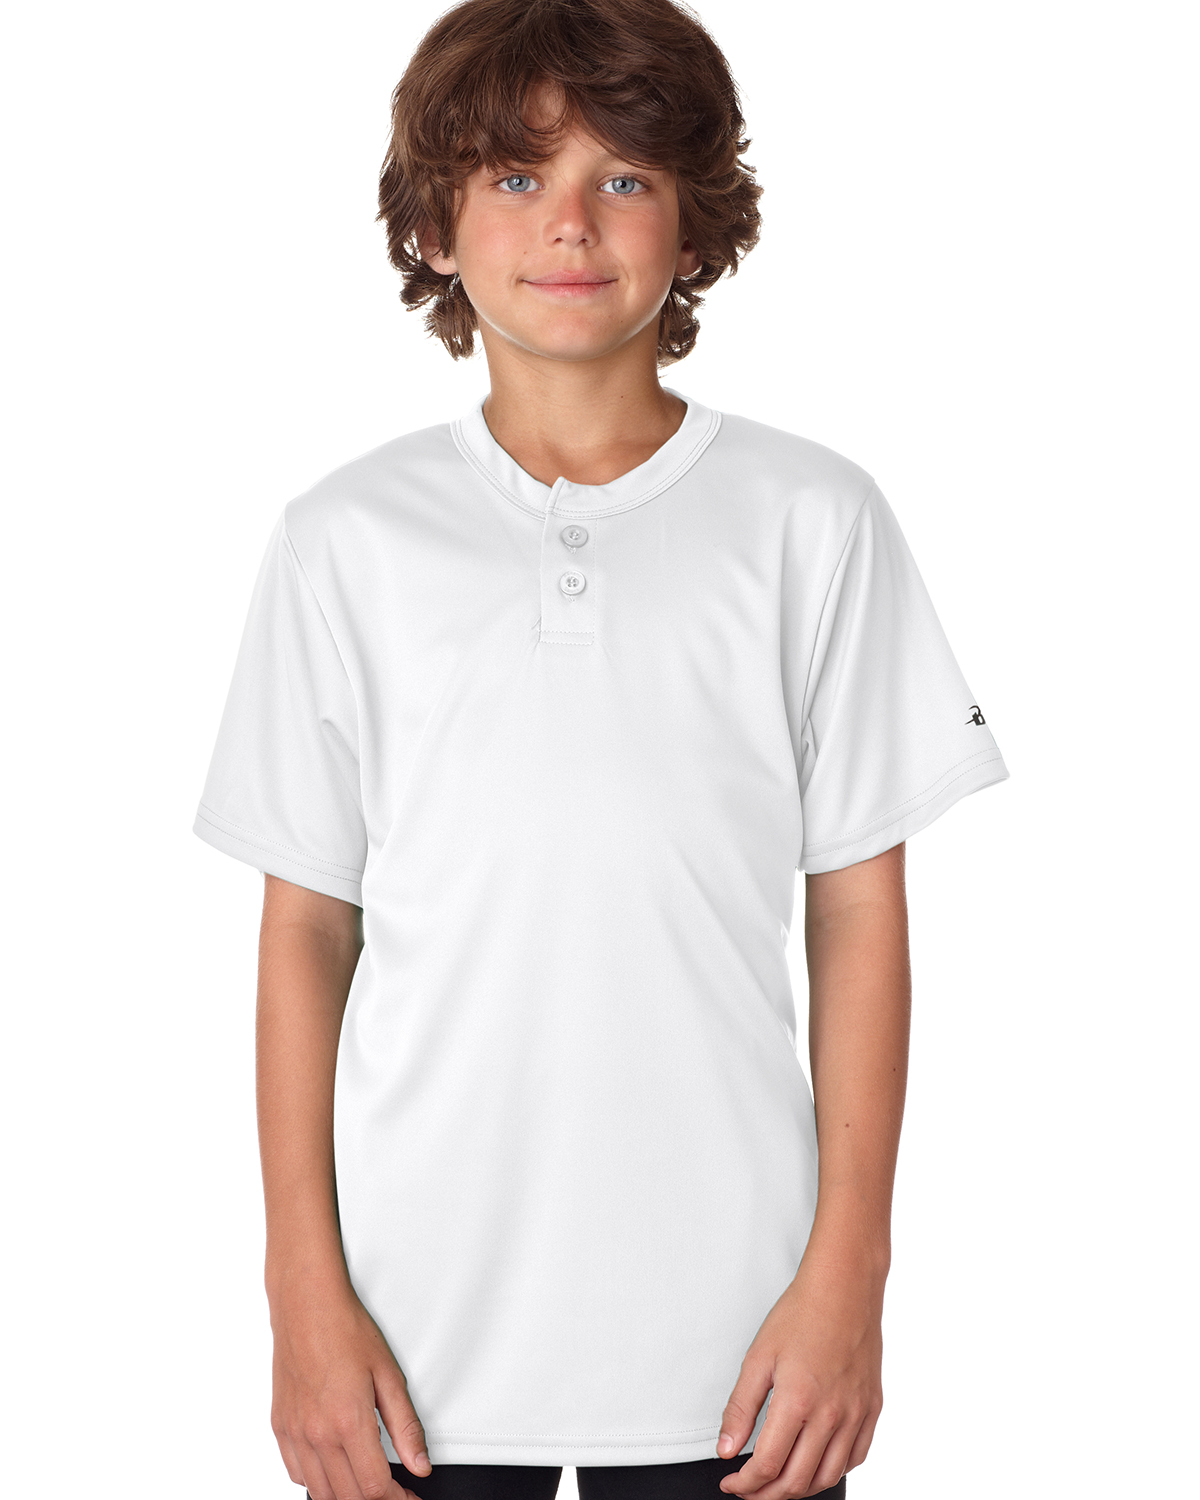 Badger Sport B2930 - Youth B-Core Henley Tee